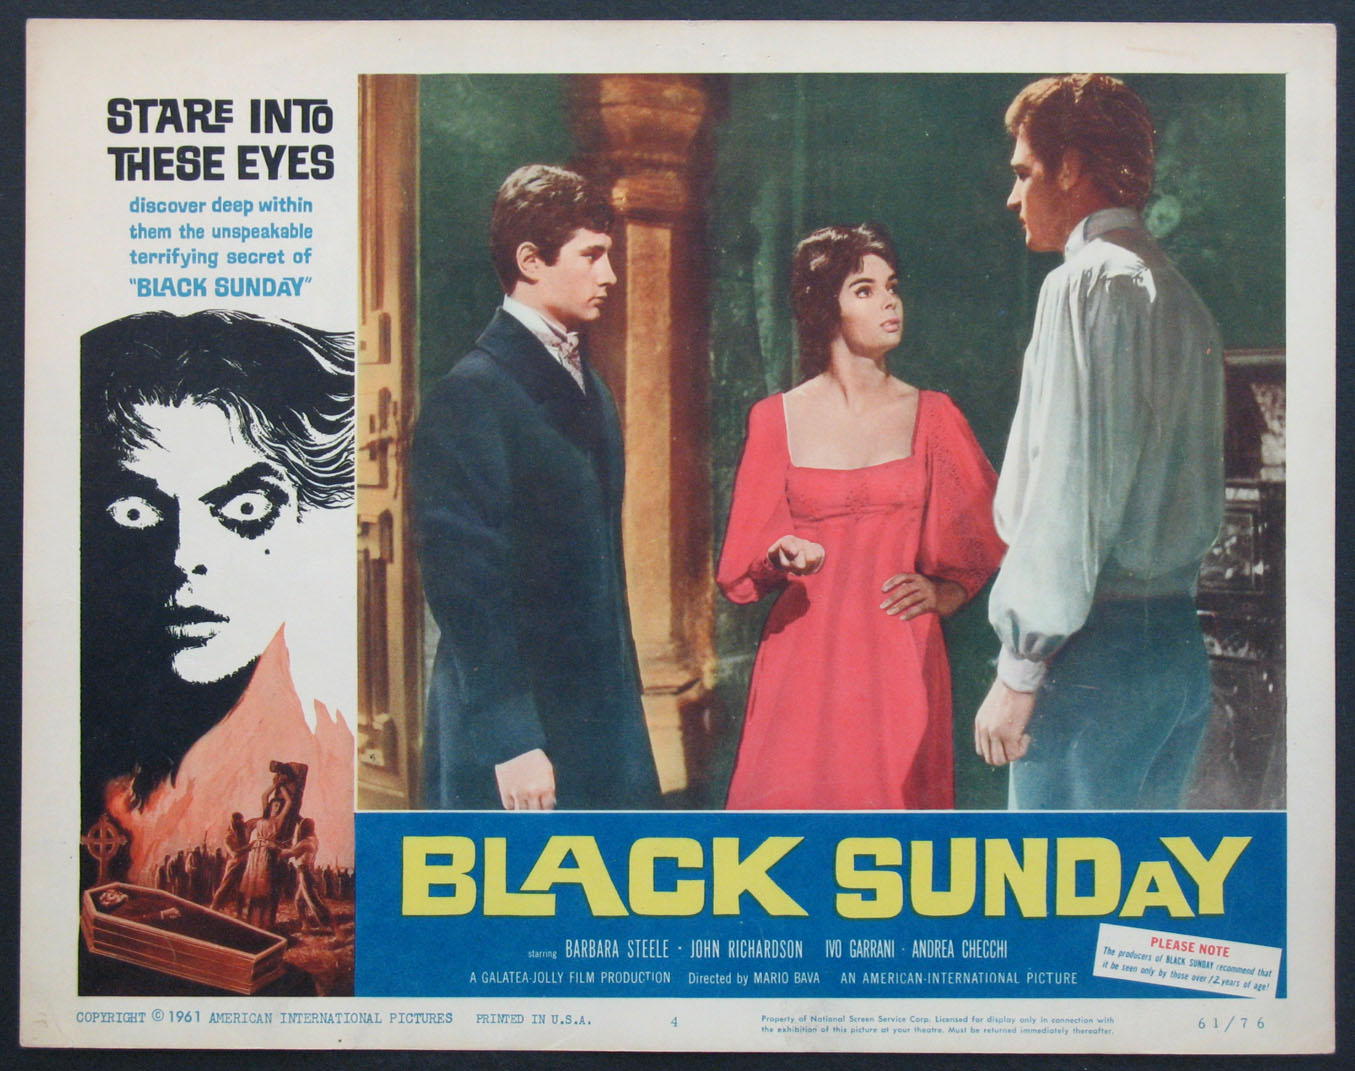 BLACK SUNDAY @ FilmPosters.com